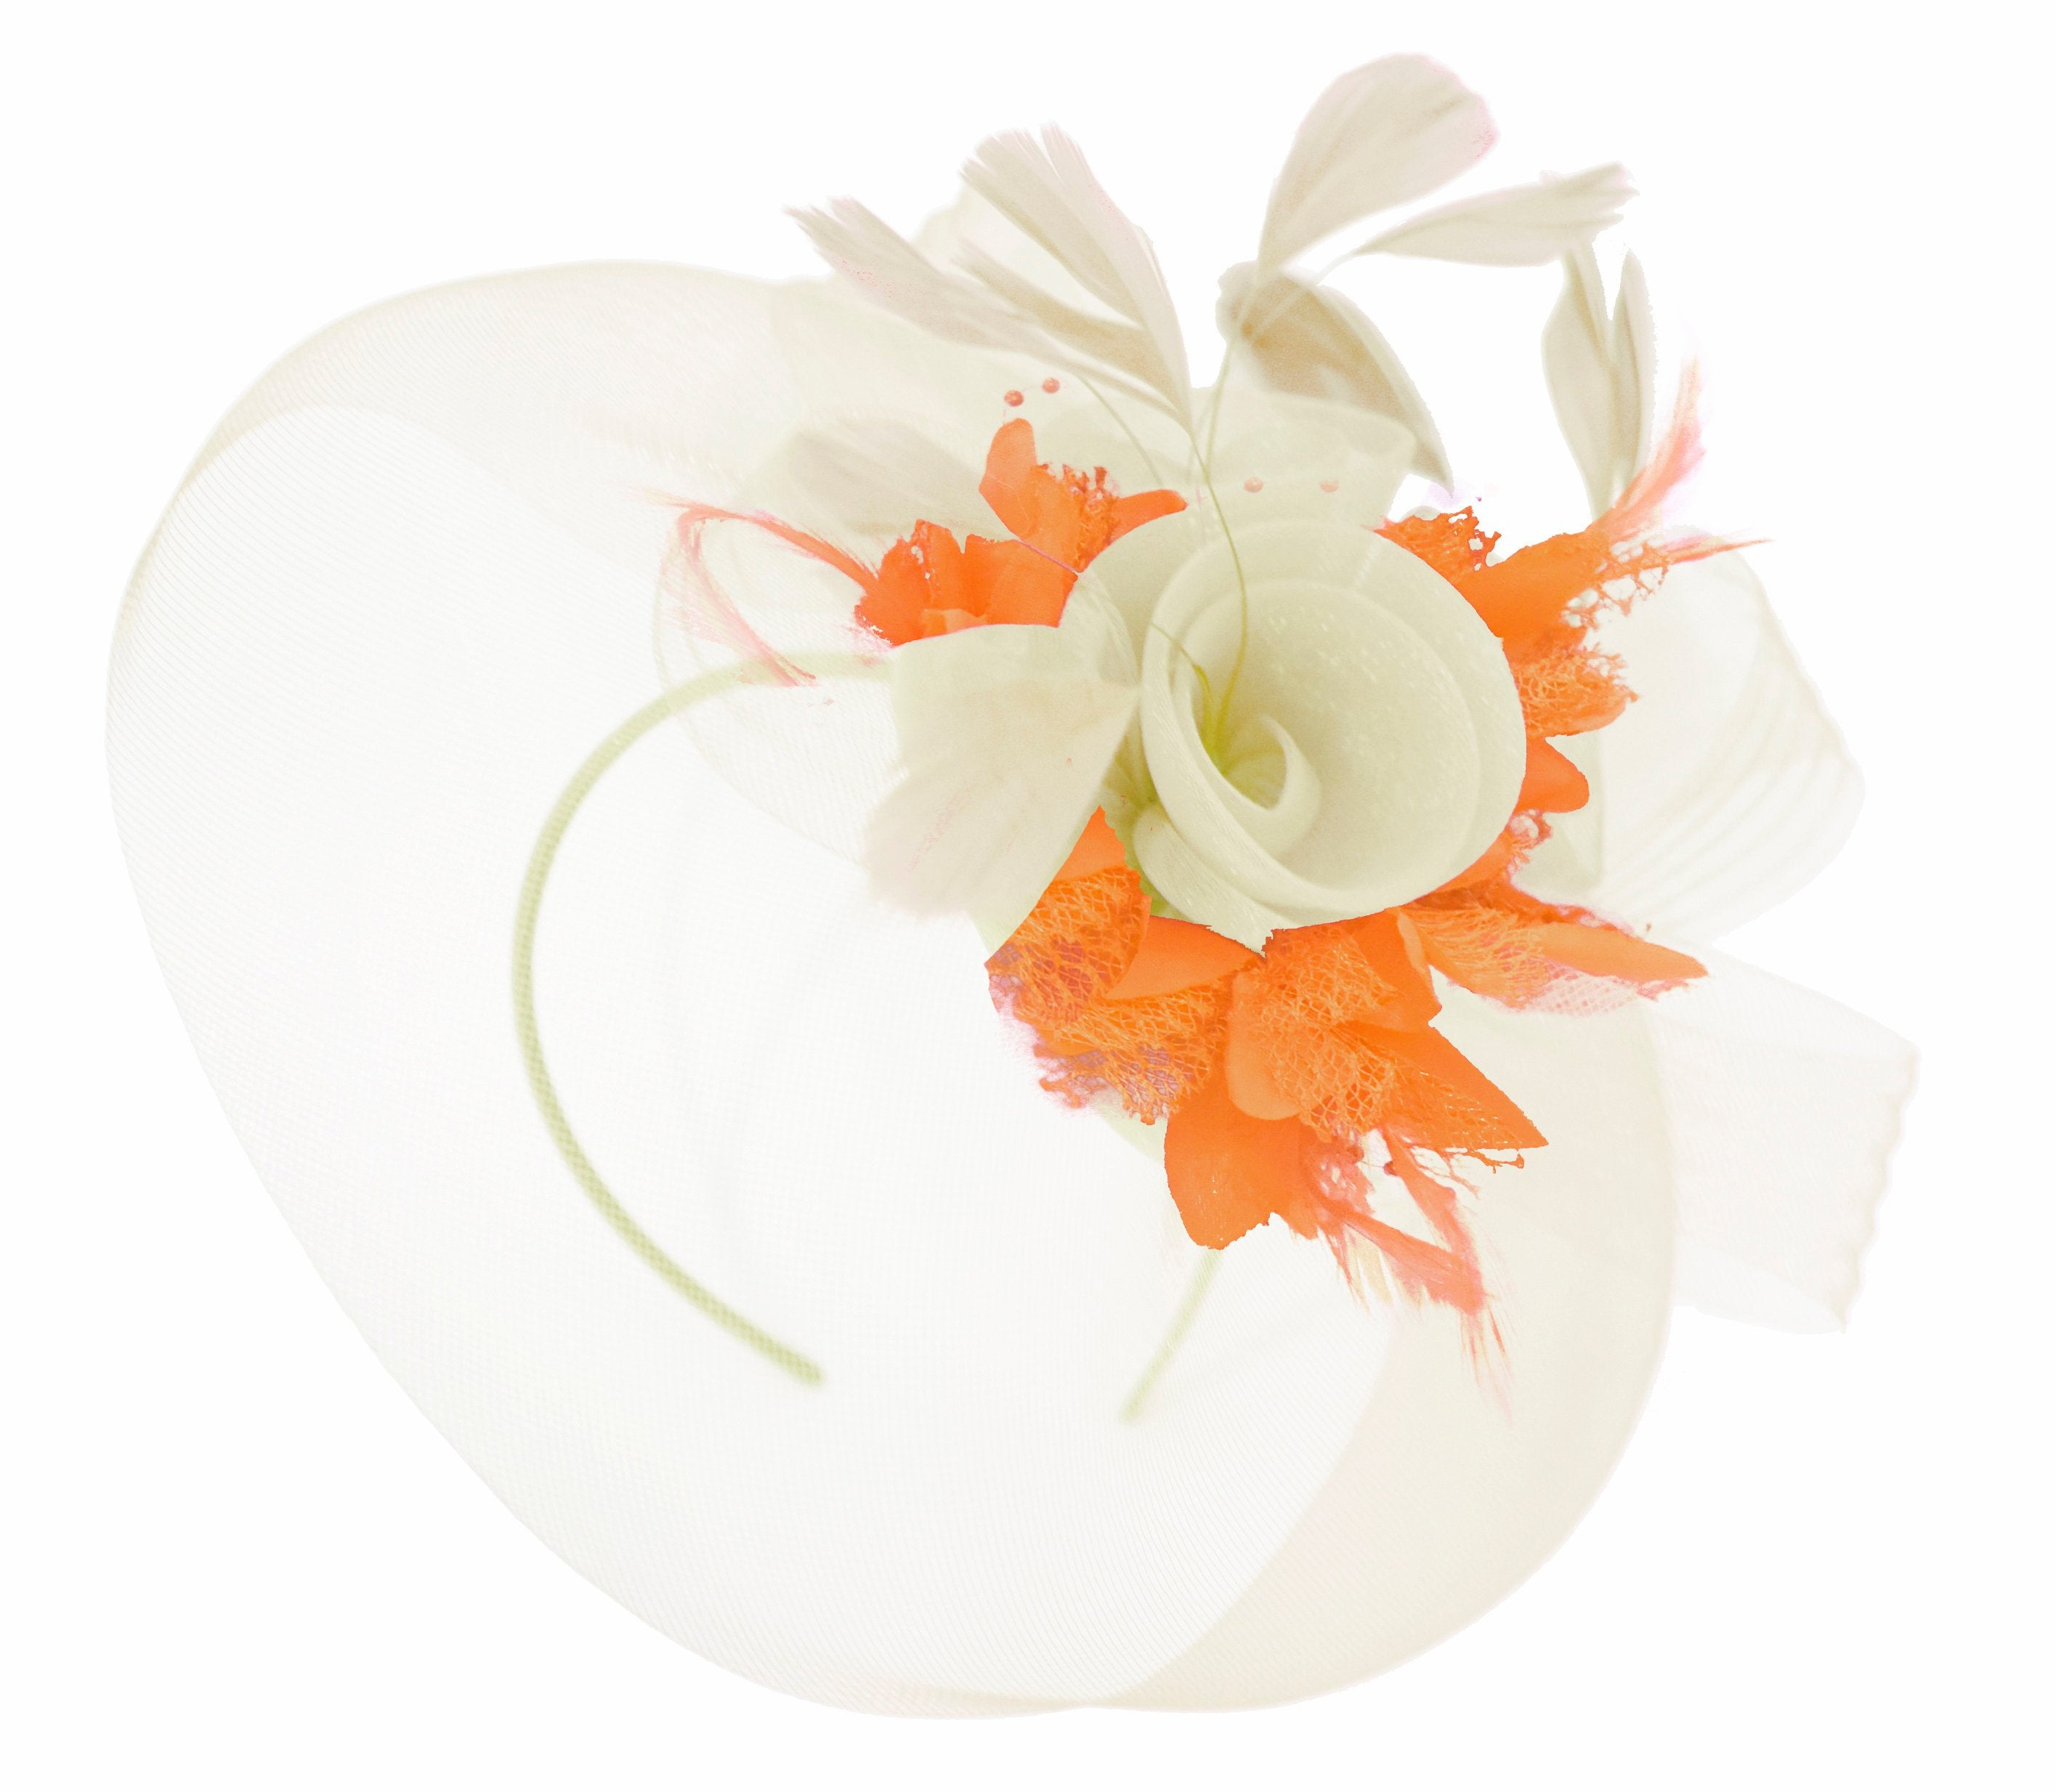 Caprilite Cream and Orange Fascinator on Headband Veil UK Wedding Ascot Races Hatinator Women